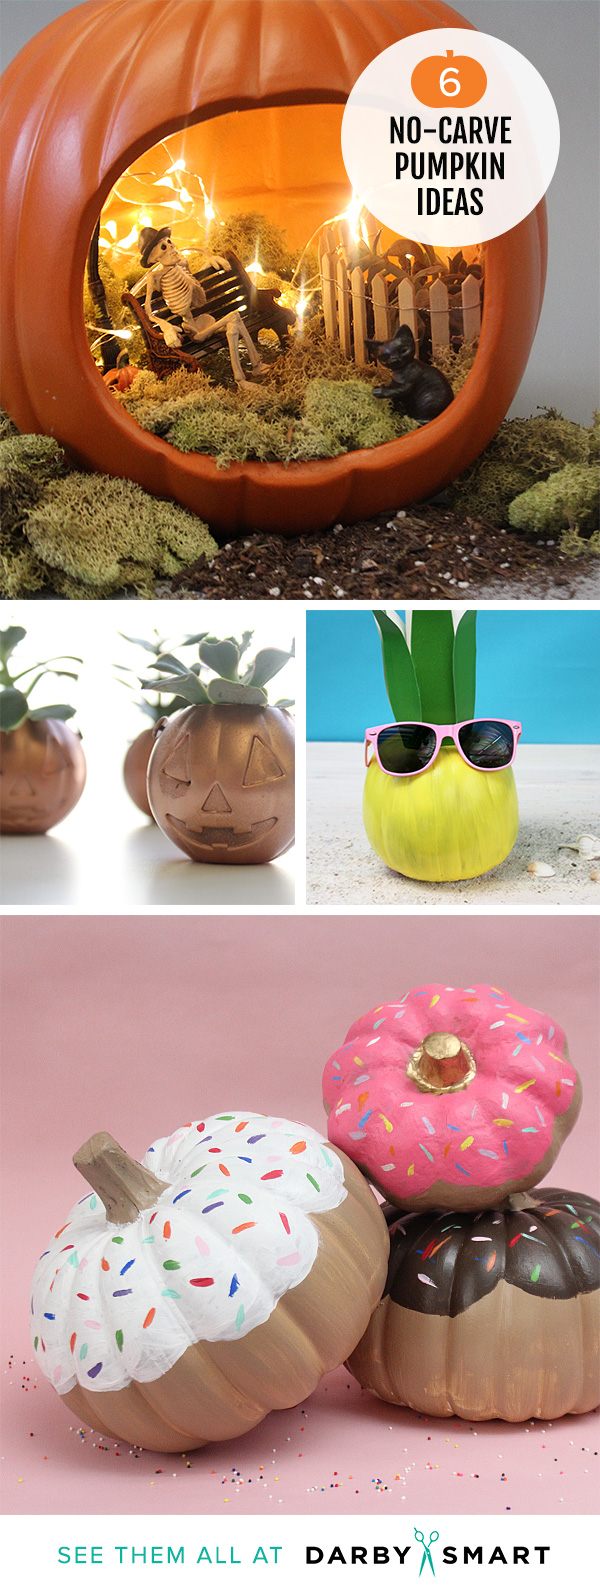 Easy No Carve Pumpkin Ideas that Make the Best Halloween Decorations